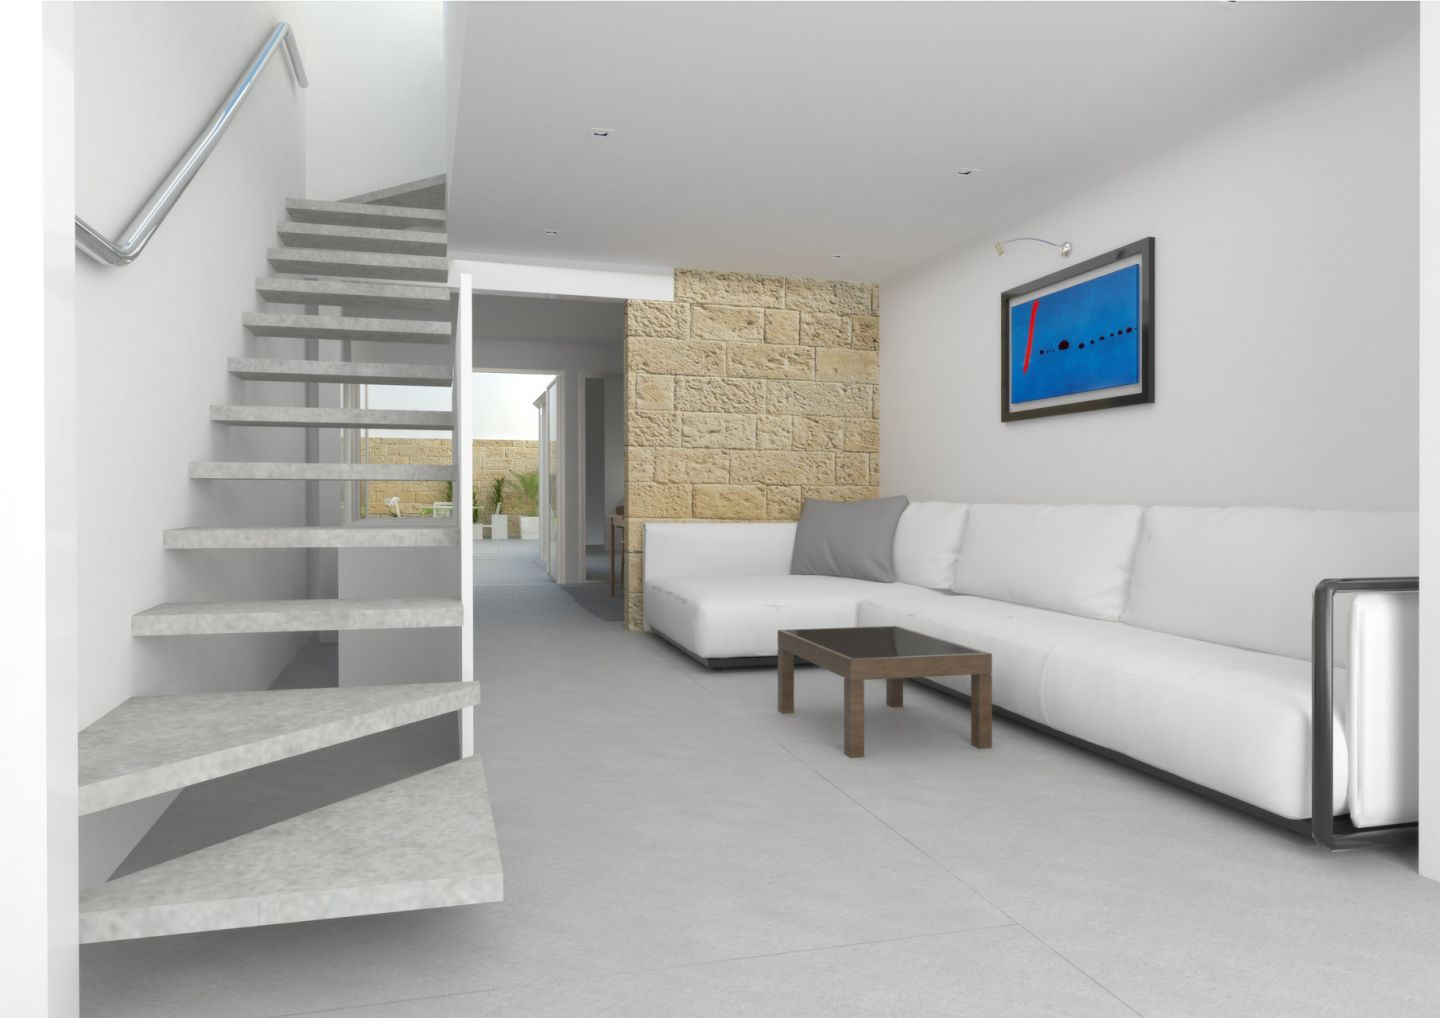 3 Bed Townhouse for sale in POLLENSA 18